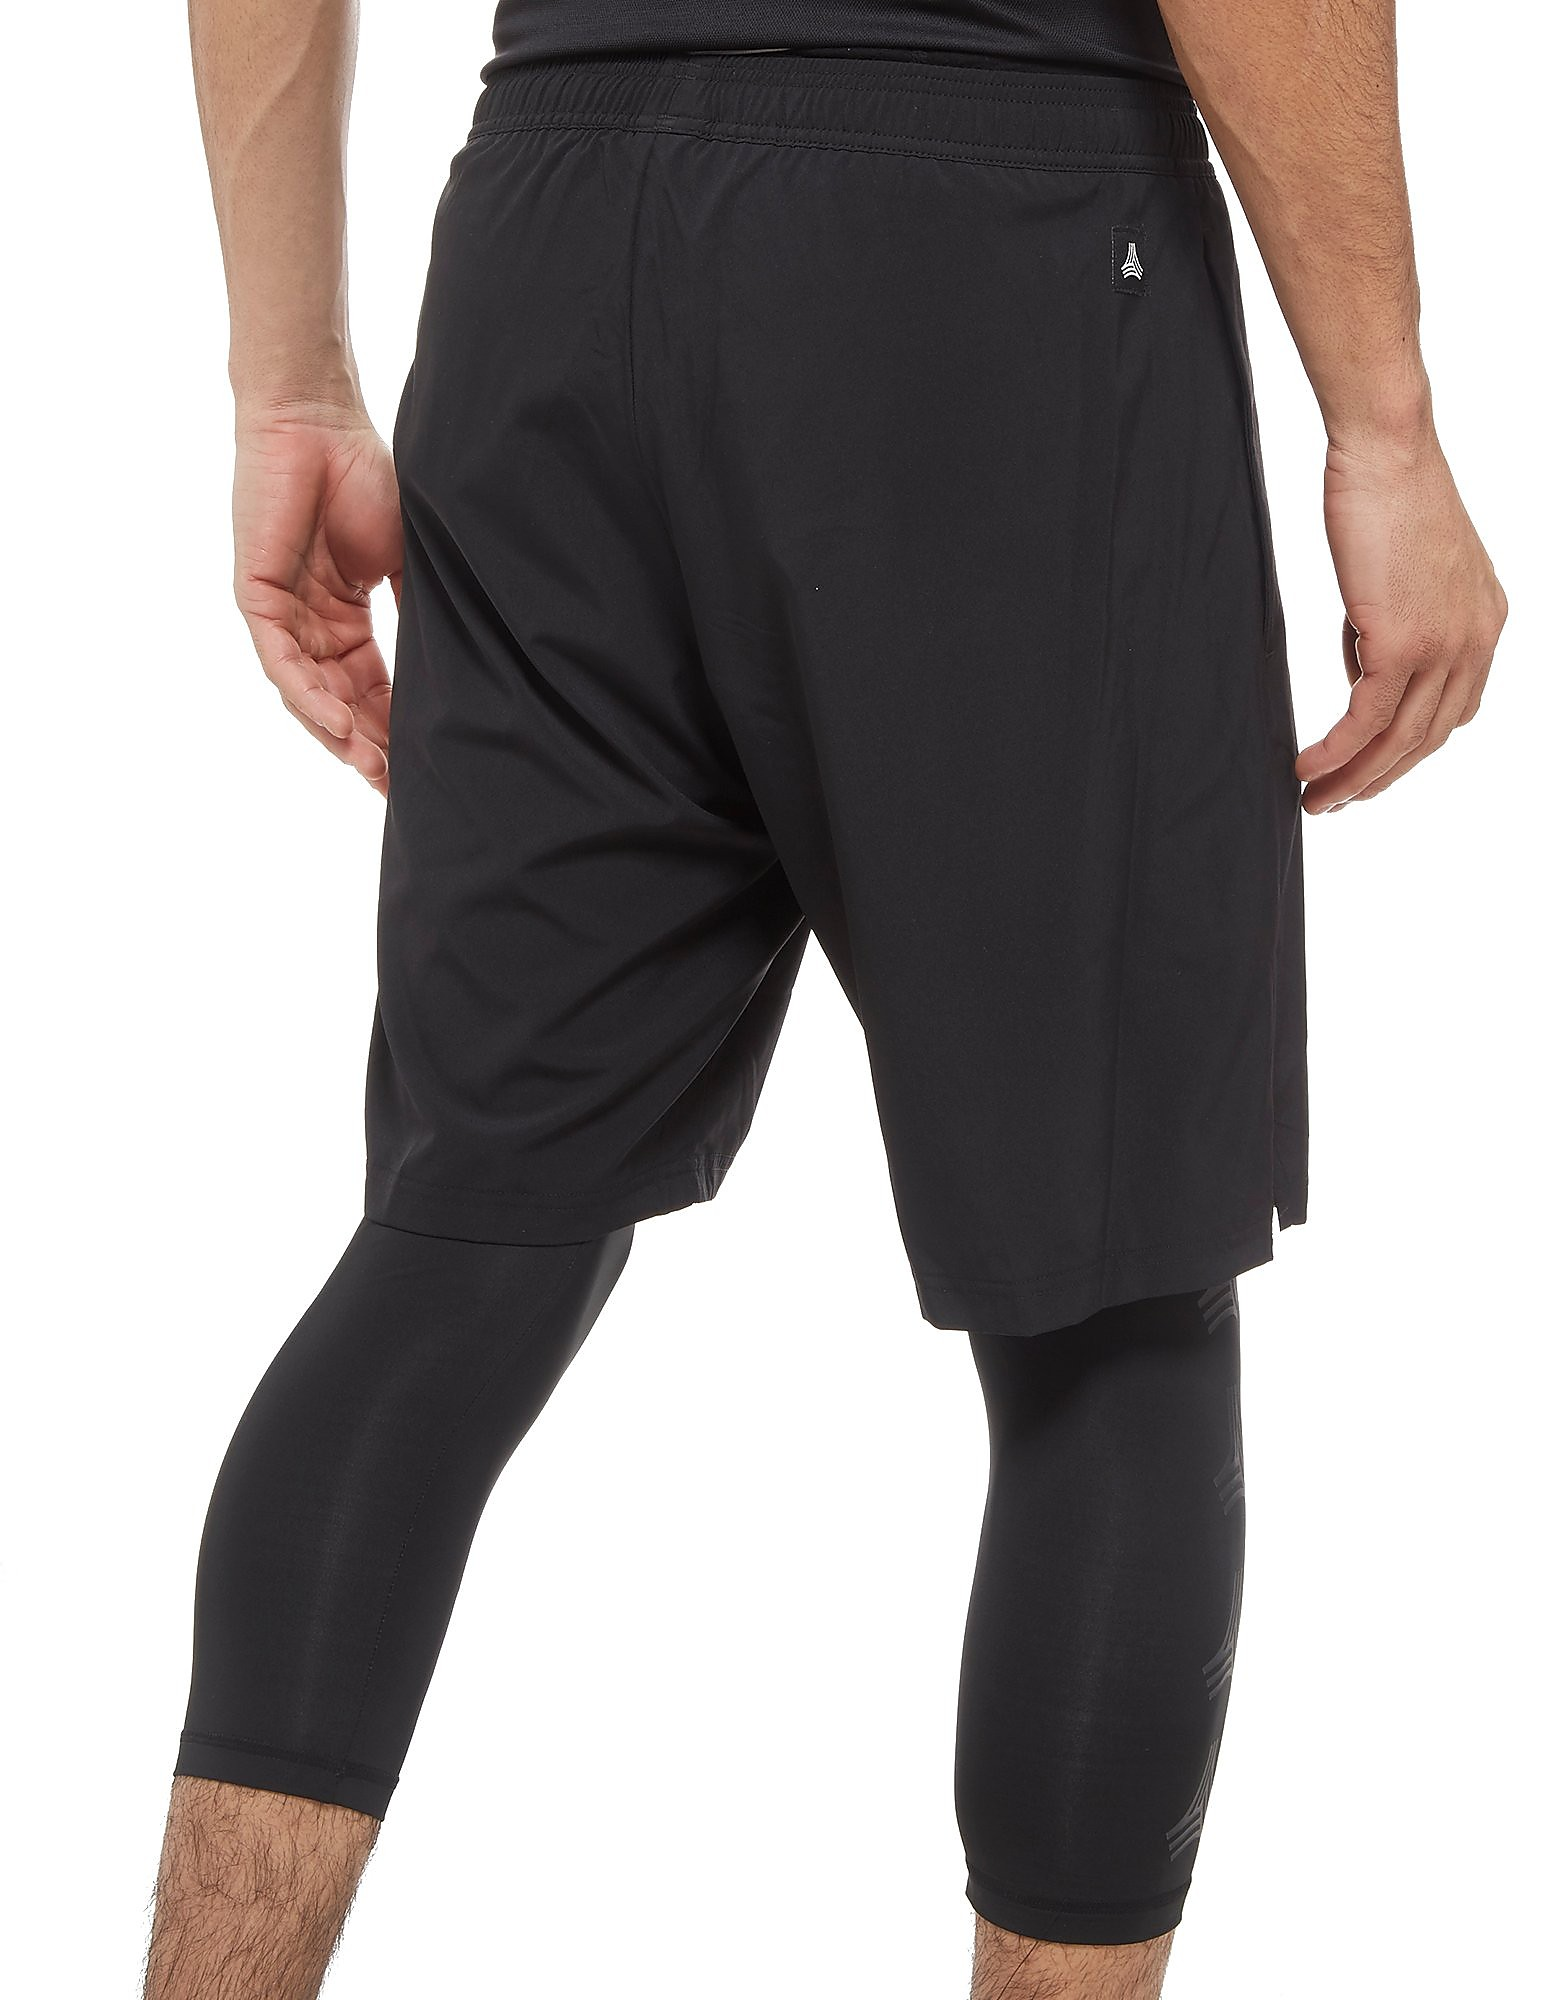 adidas Tango Shorts and Tights